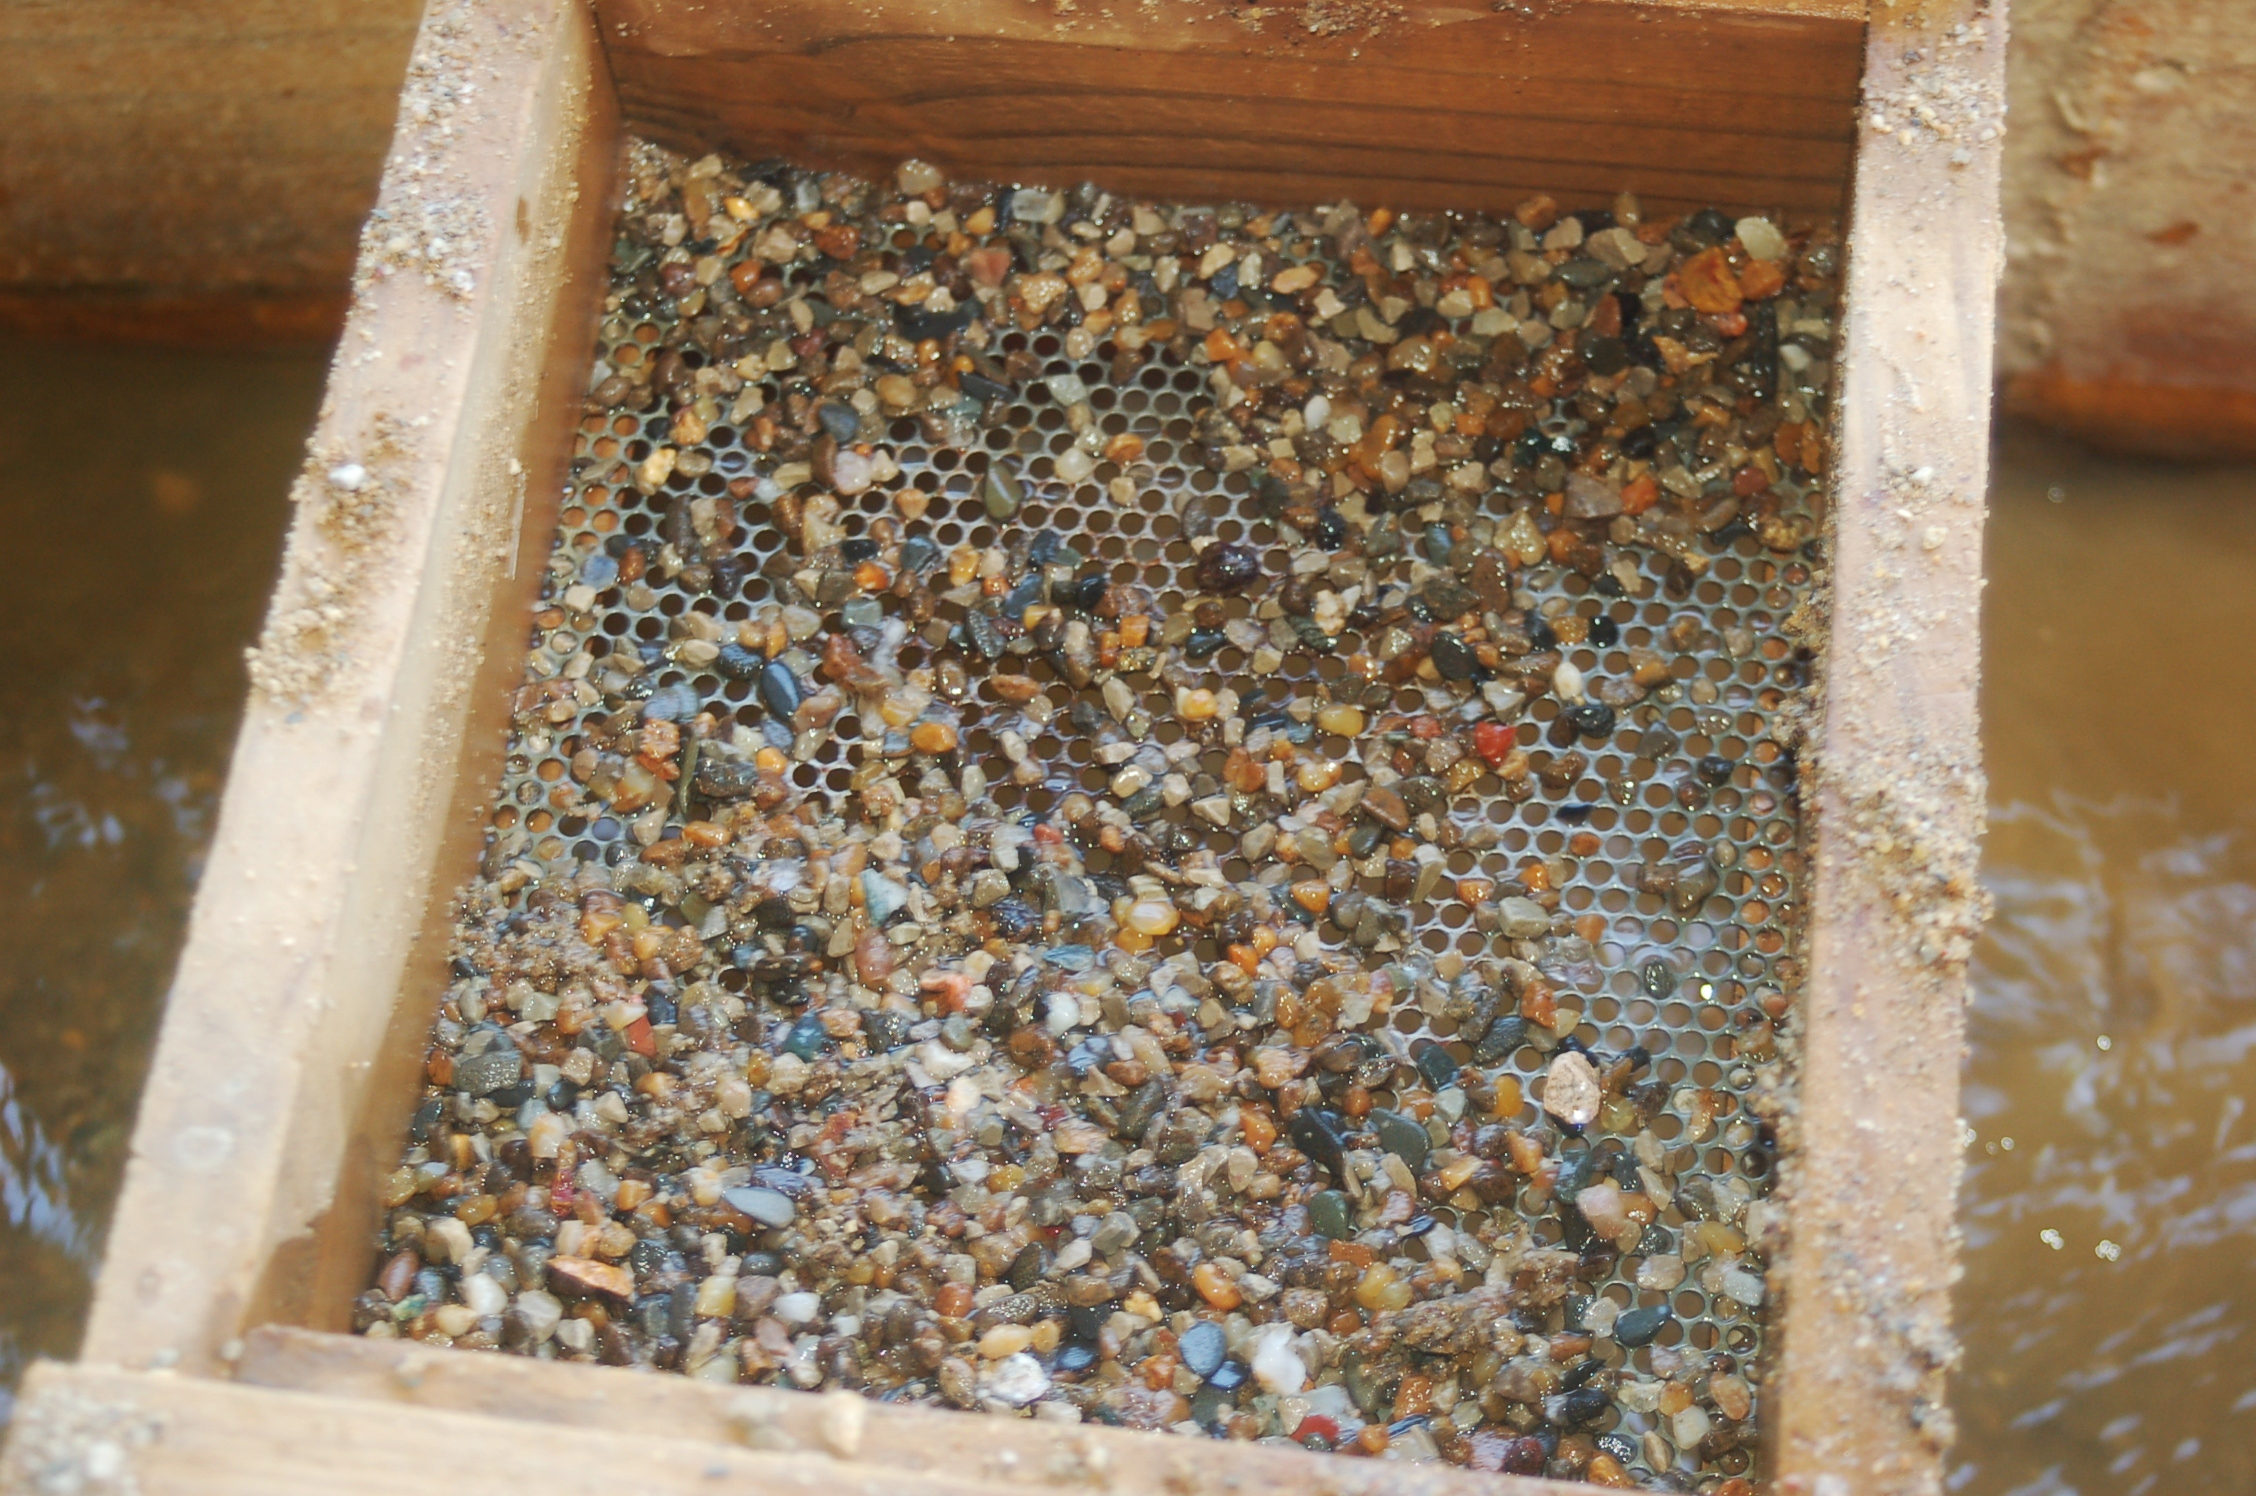 gem panning in tennessee at raccoon mountain caverns